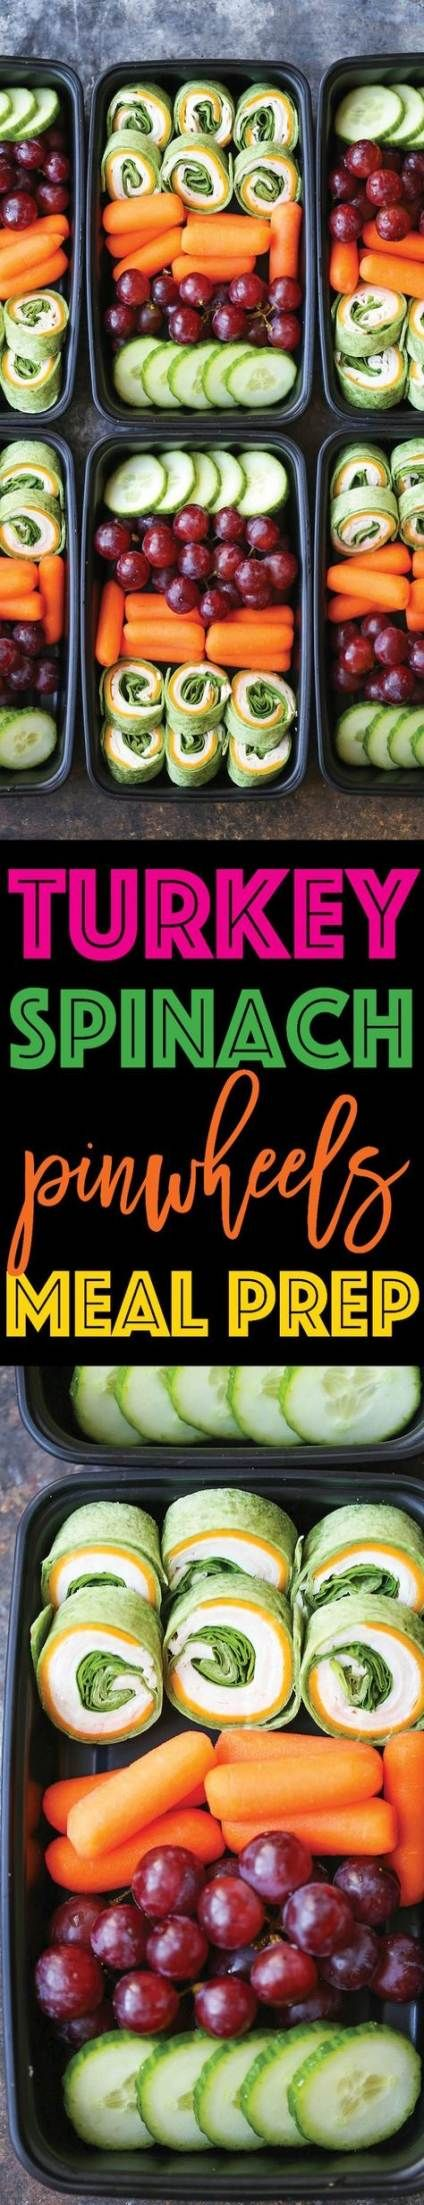 27+ Ideas For Fitness Meals Recipes Track #fitness #recipes